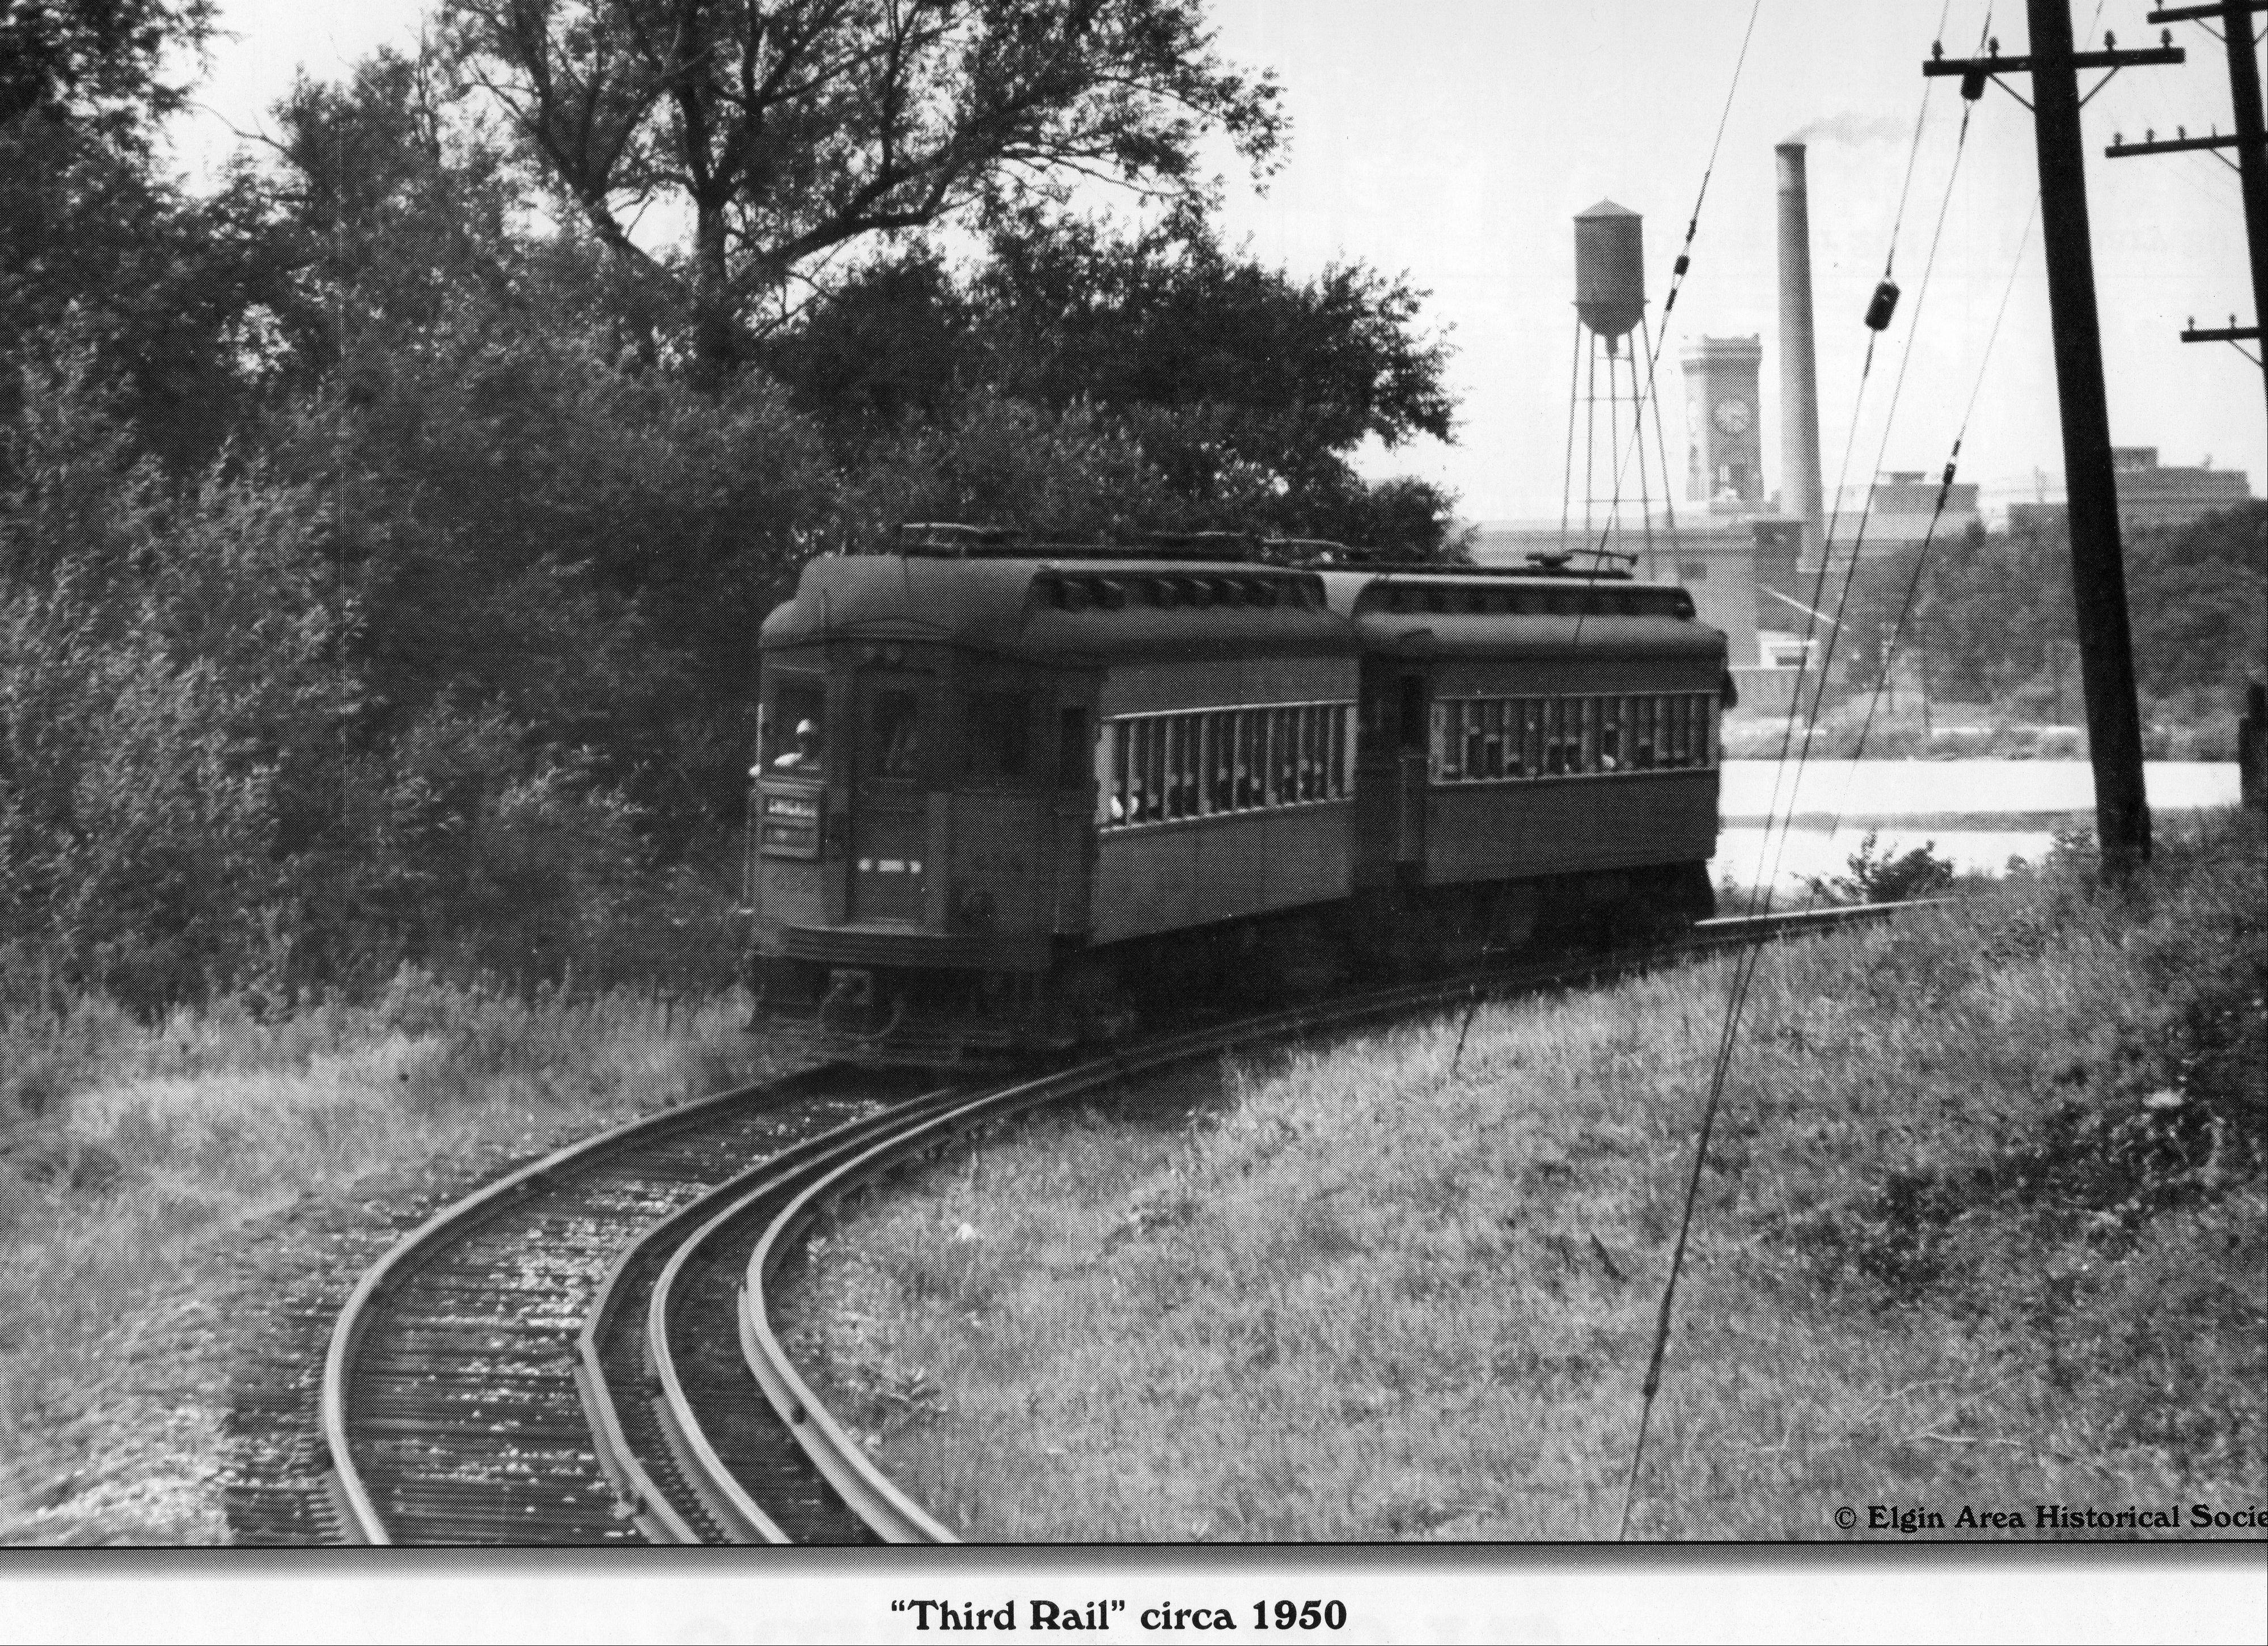 Service was interrupted in 1957 on the Chicago, Aurora and Elgin interurban railway. Do you know why? Take this quiz and find out.